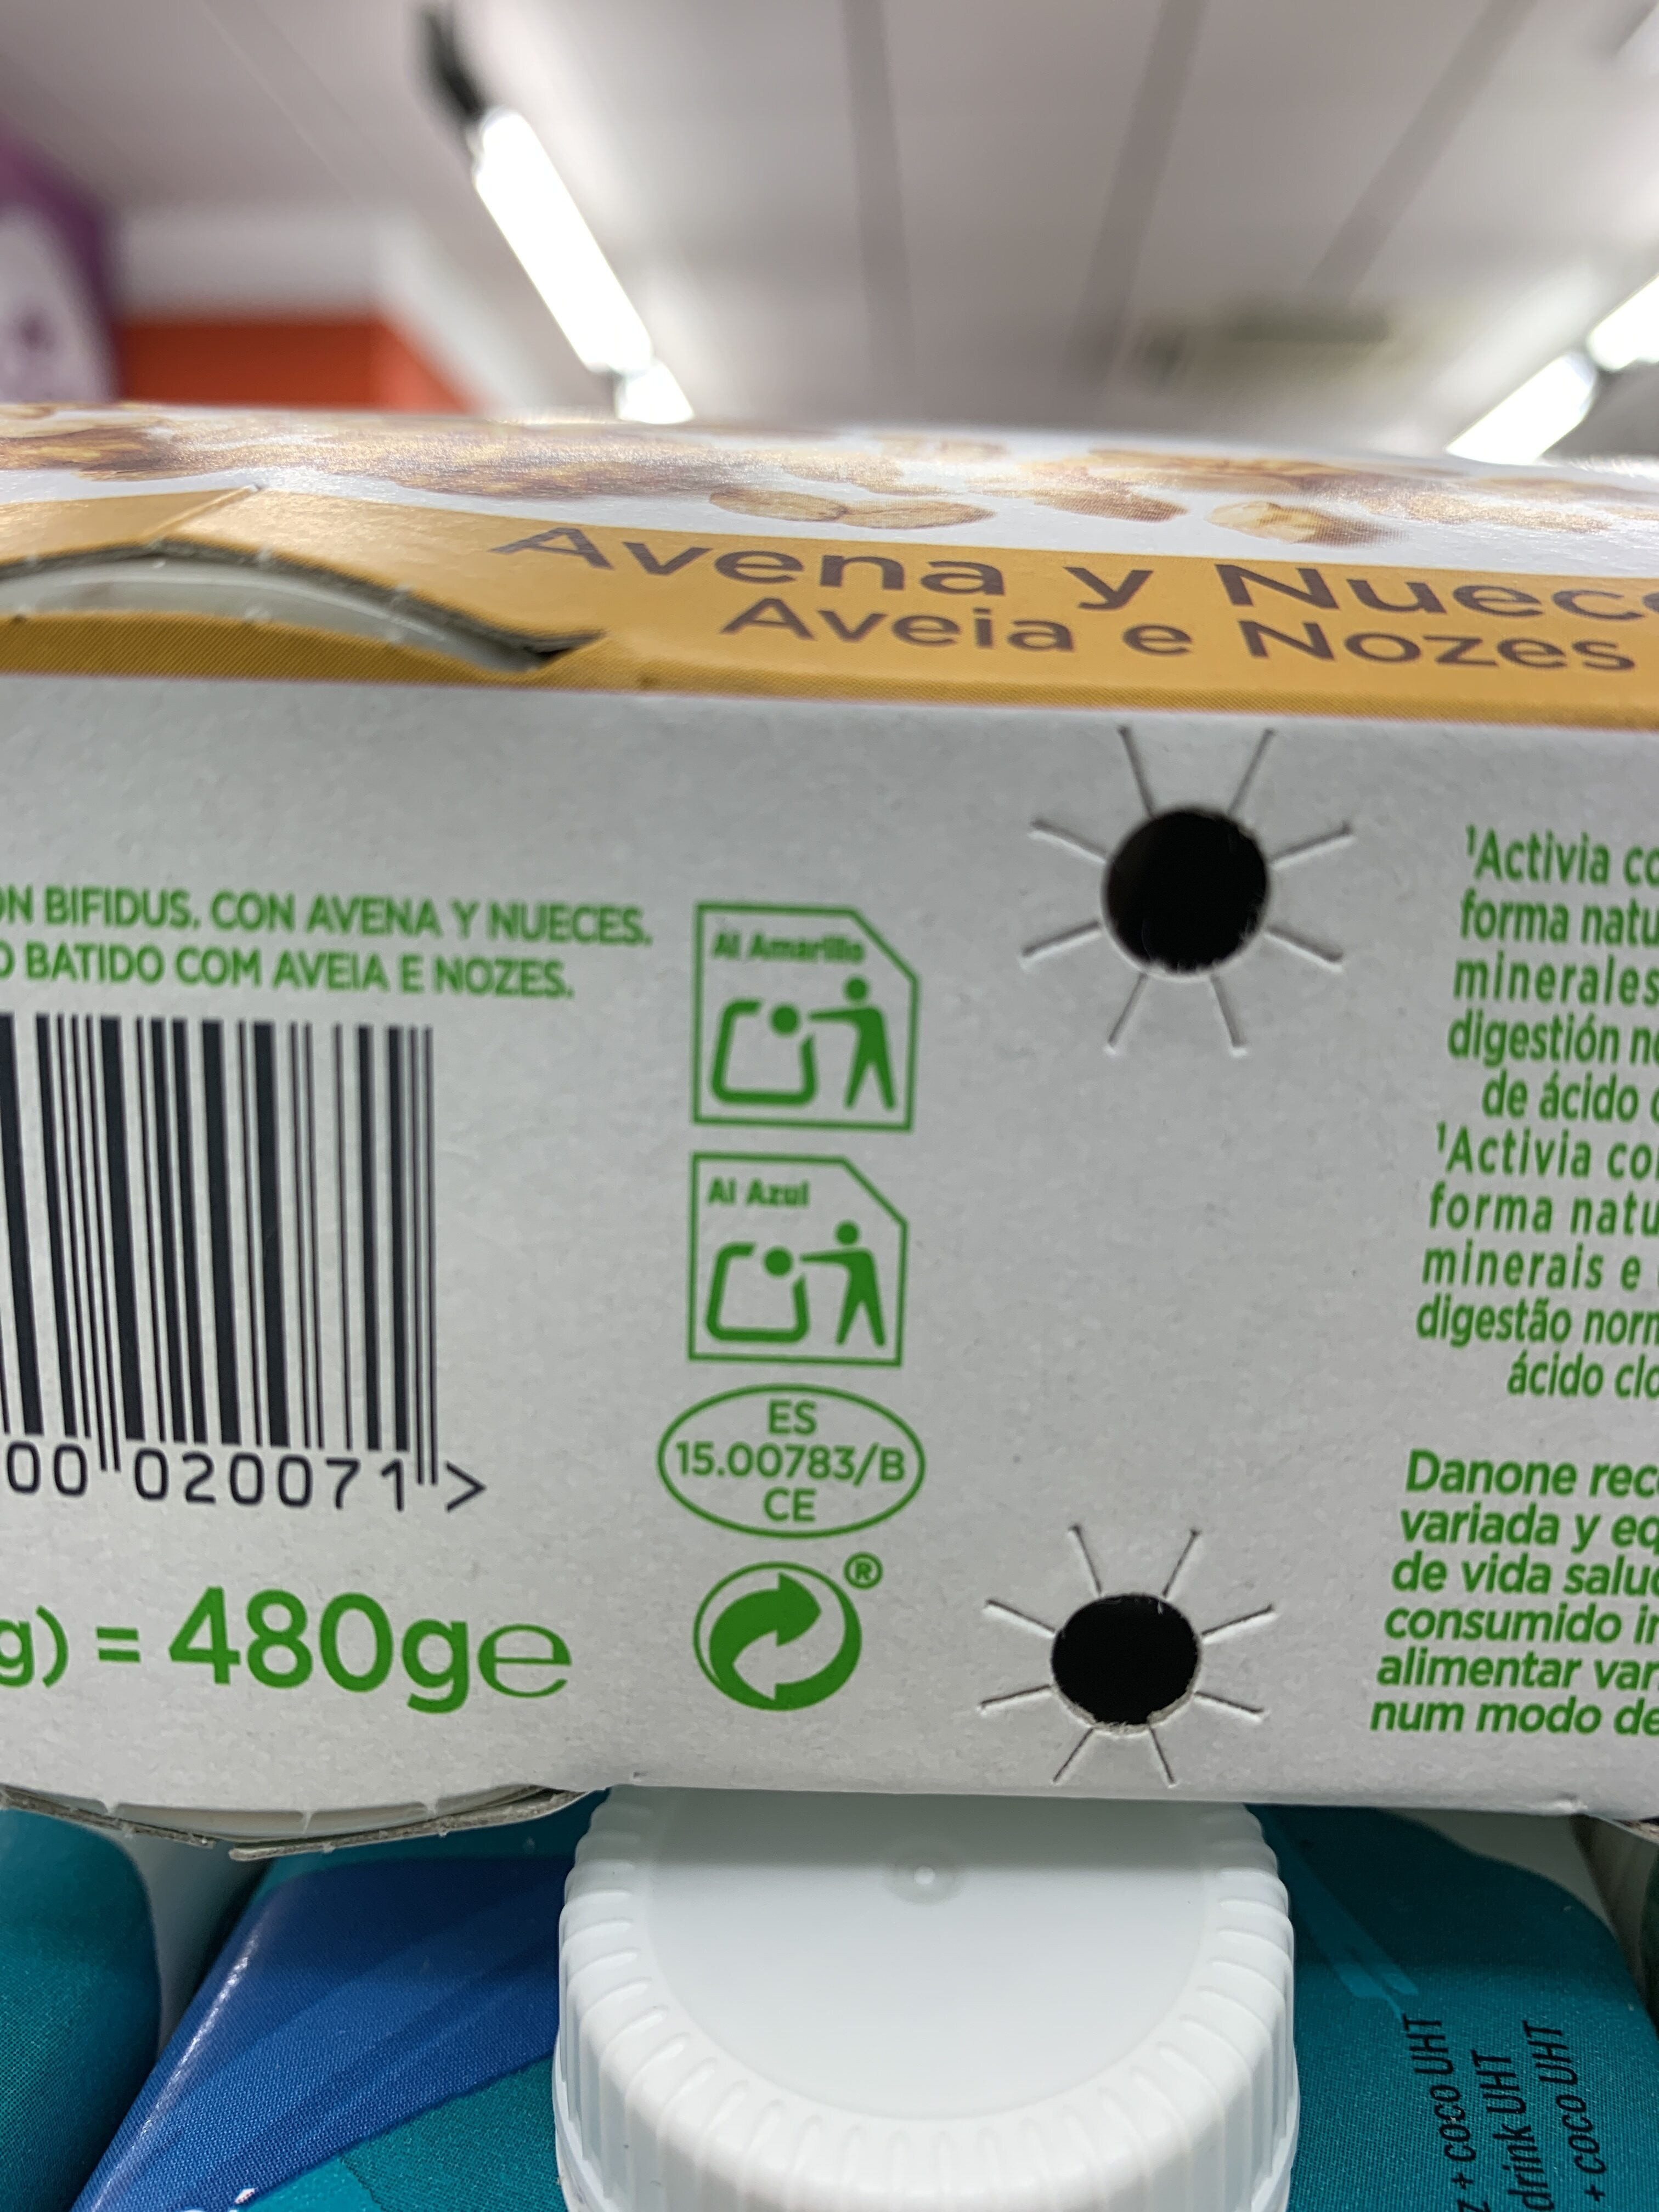 Fibras bífidus con avena y nueces - Recycling instructions and/or packaging information - es